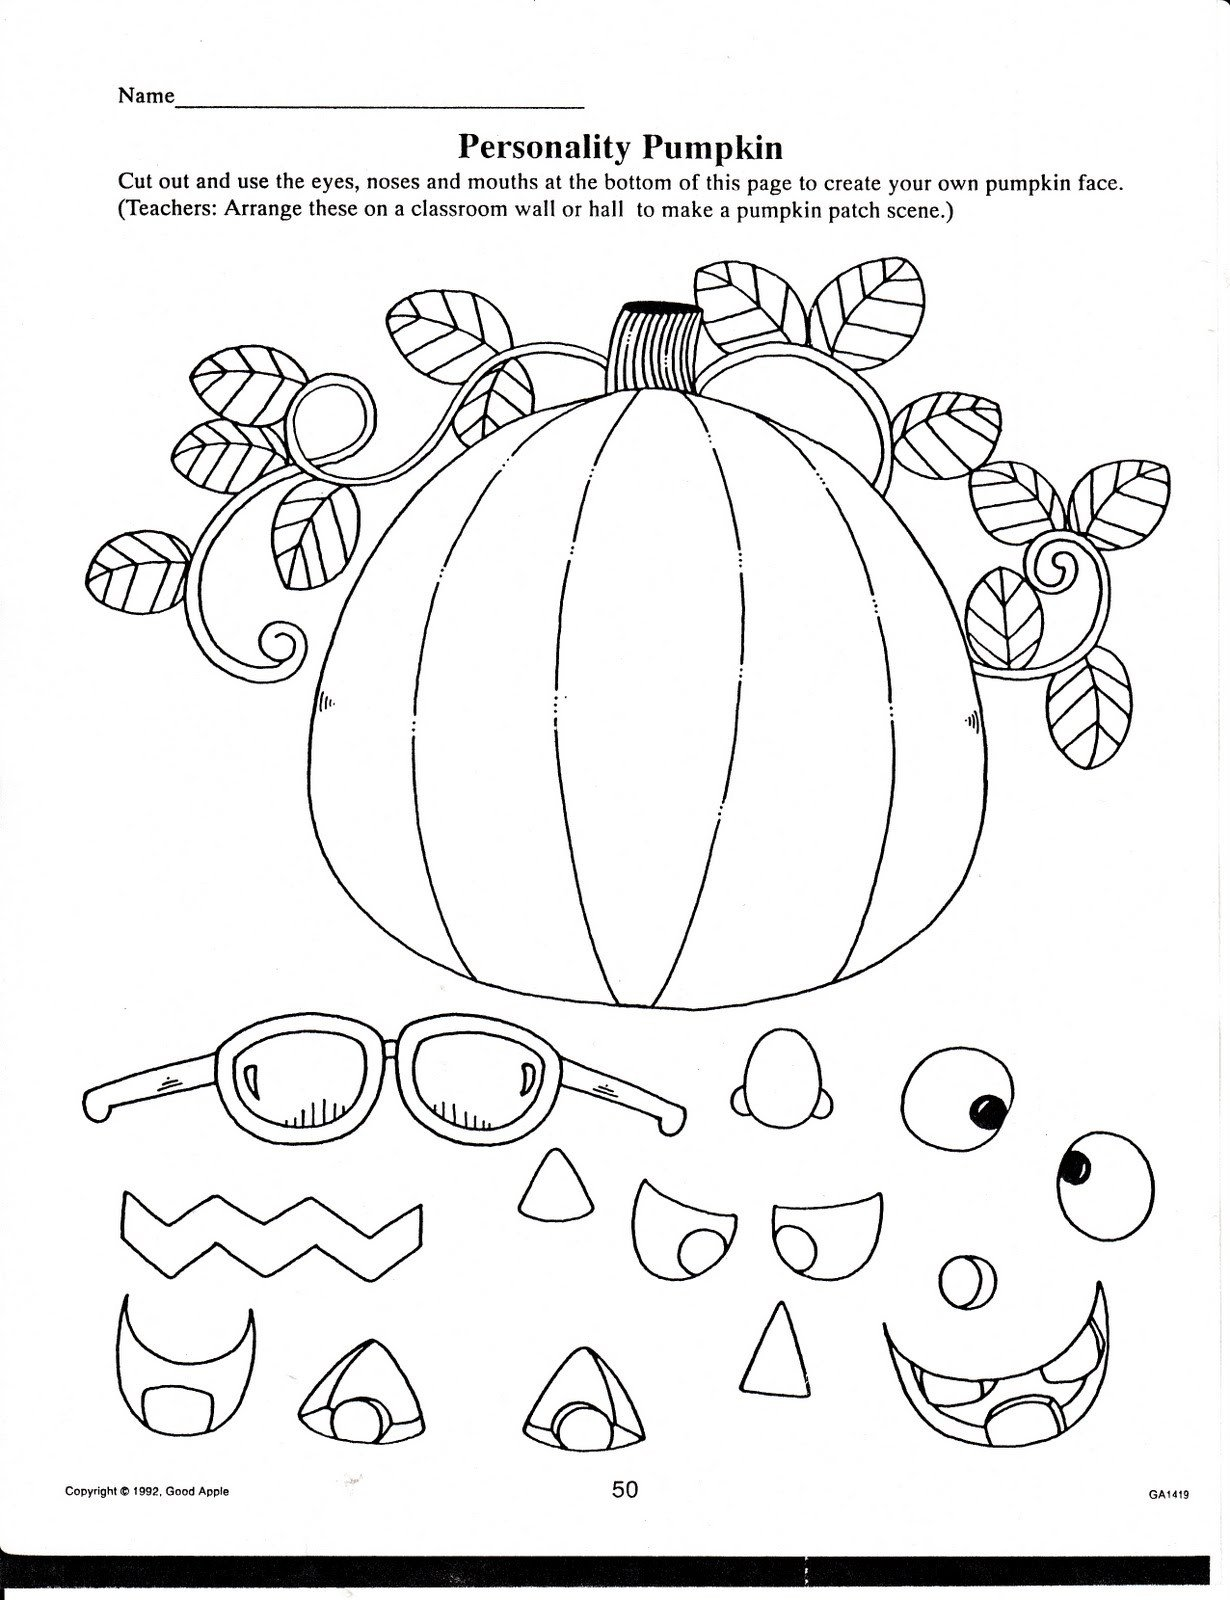 i can worksheets for kindergarten halloween printables printable year maths revision questions variables terms and expressions exponent grade matrix algebra formula